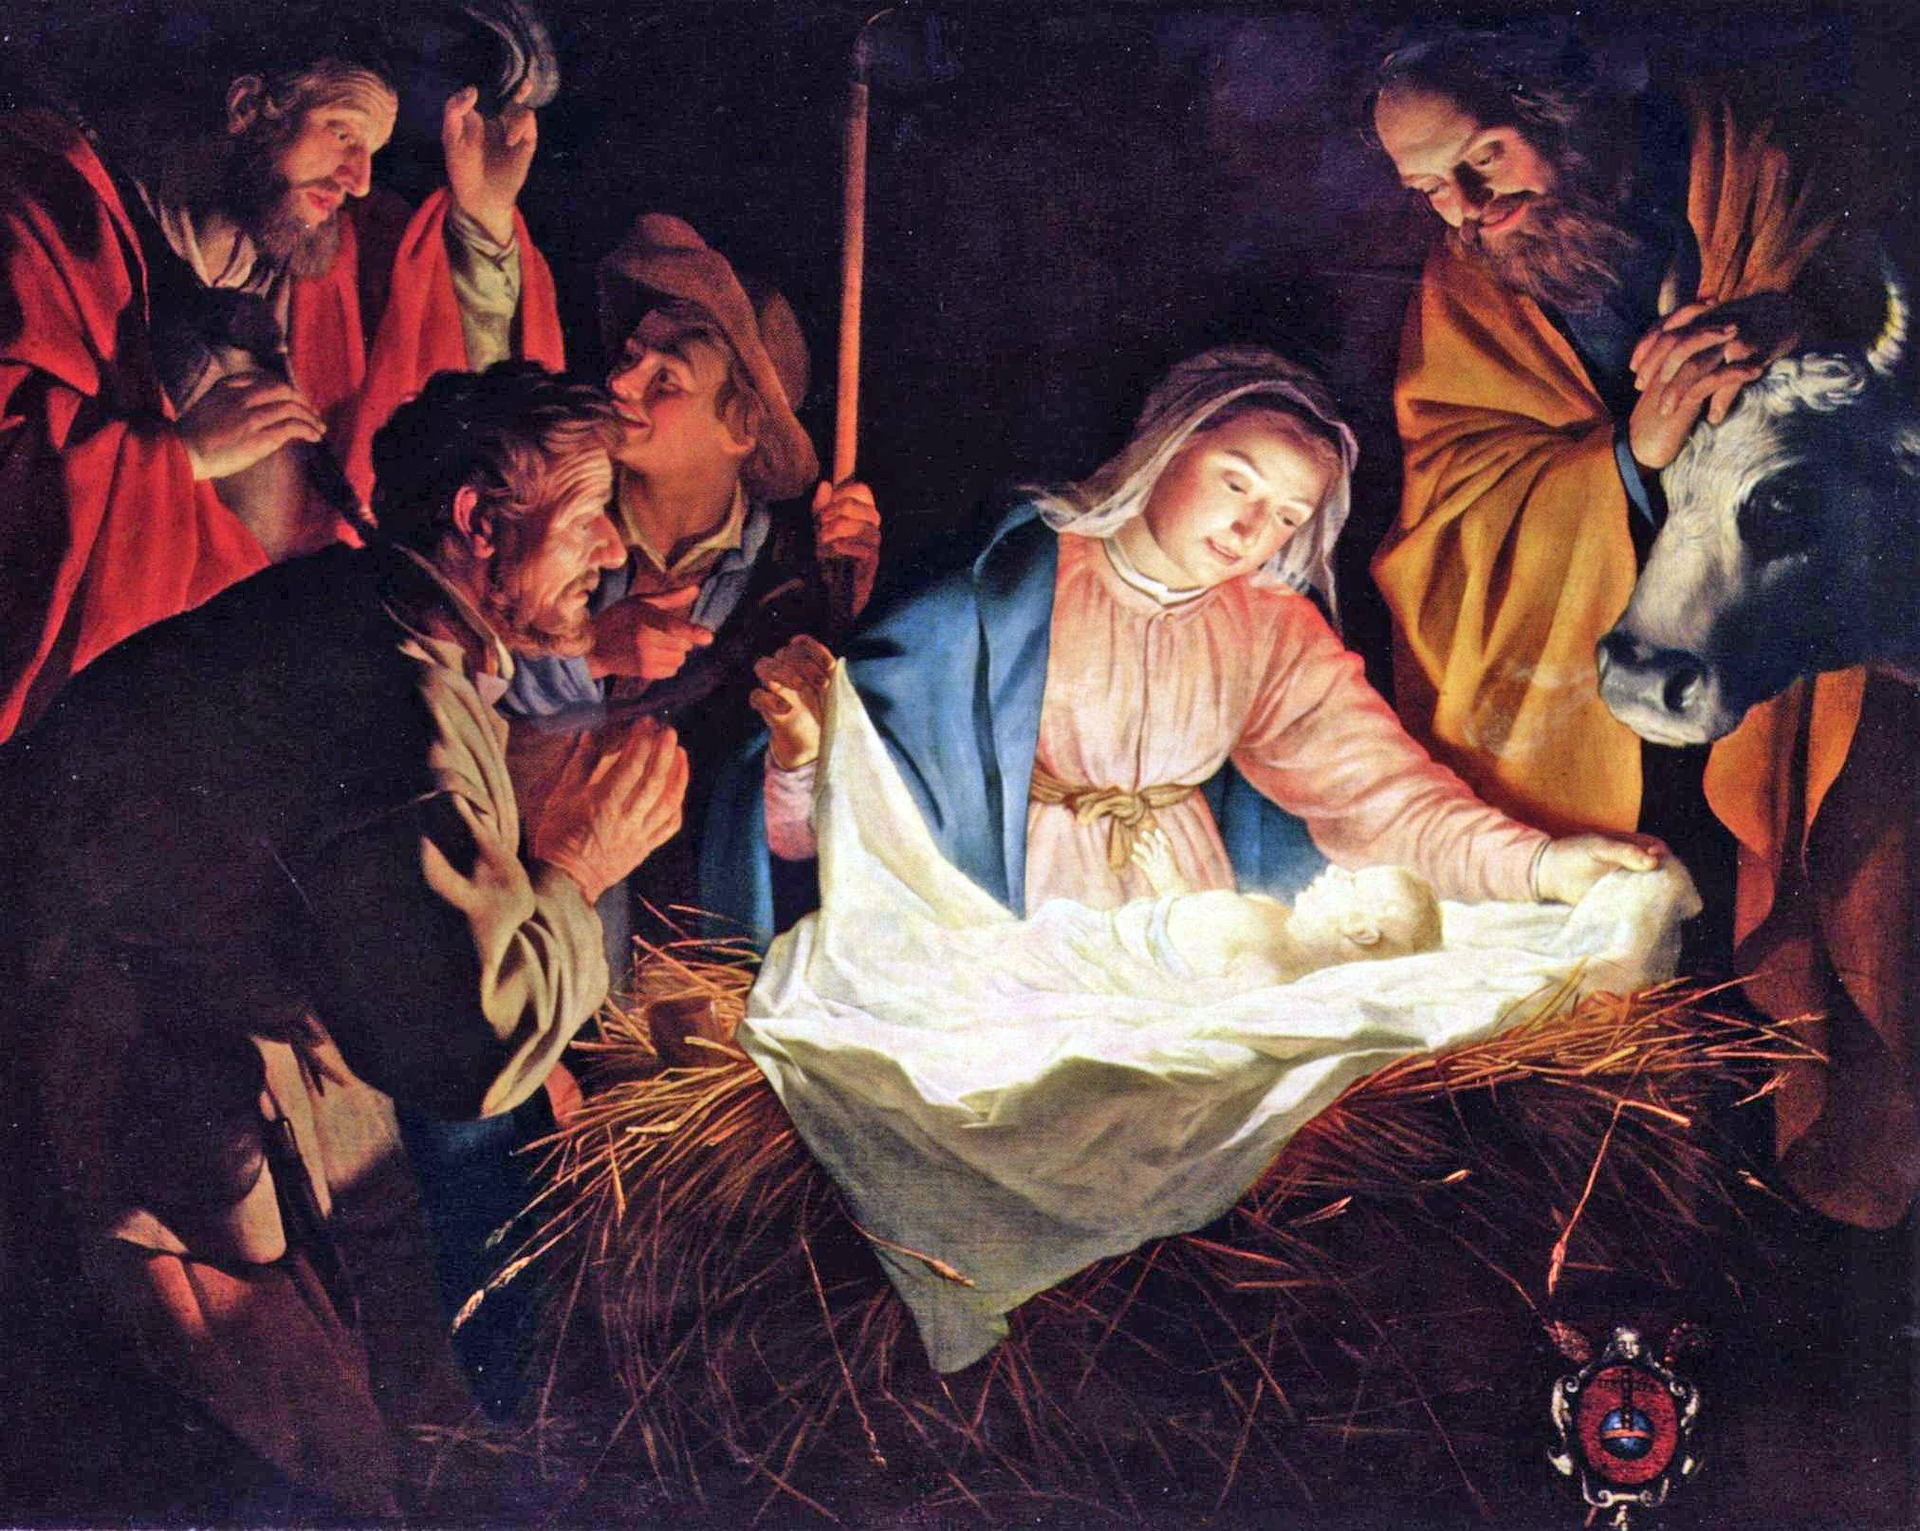 a very early christian tradition stated that the day when mary was told she would give birth to baby jesus called the annunciation was on march 25thand